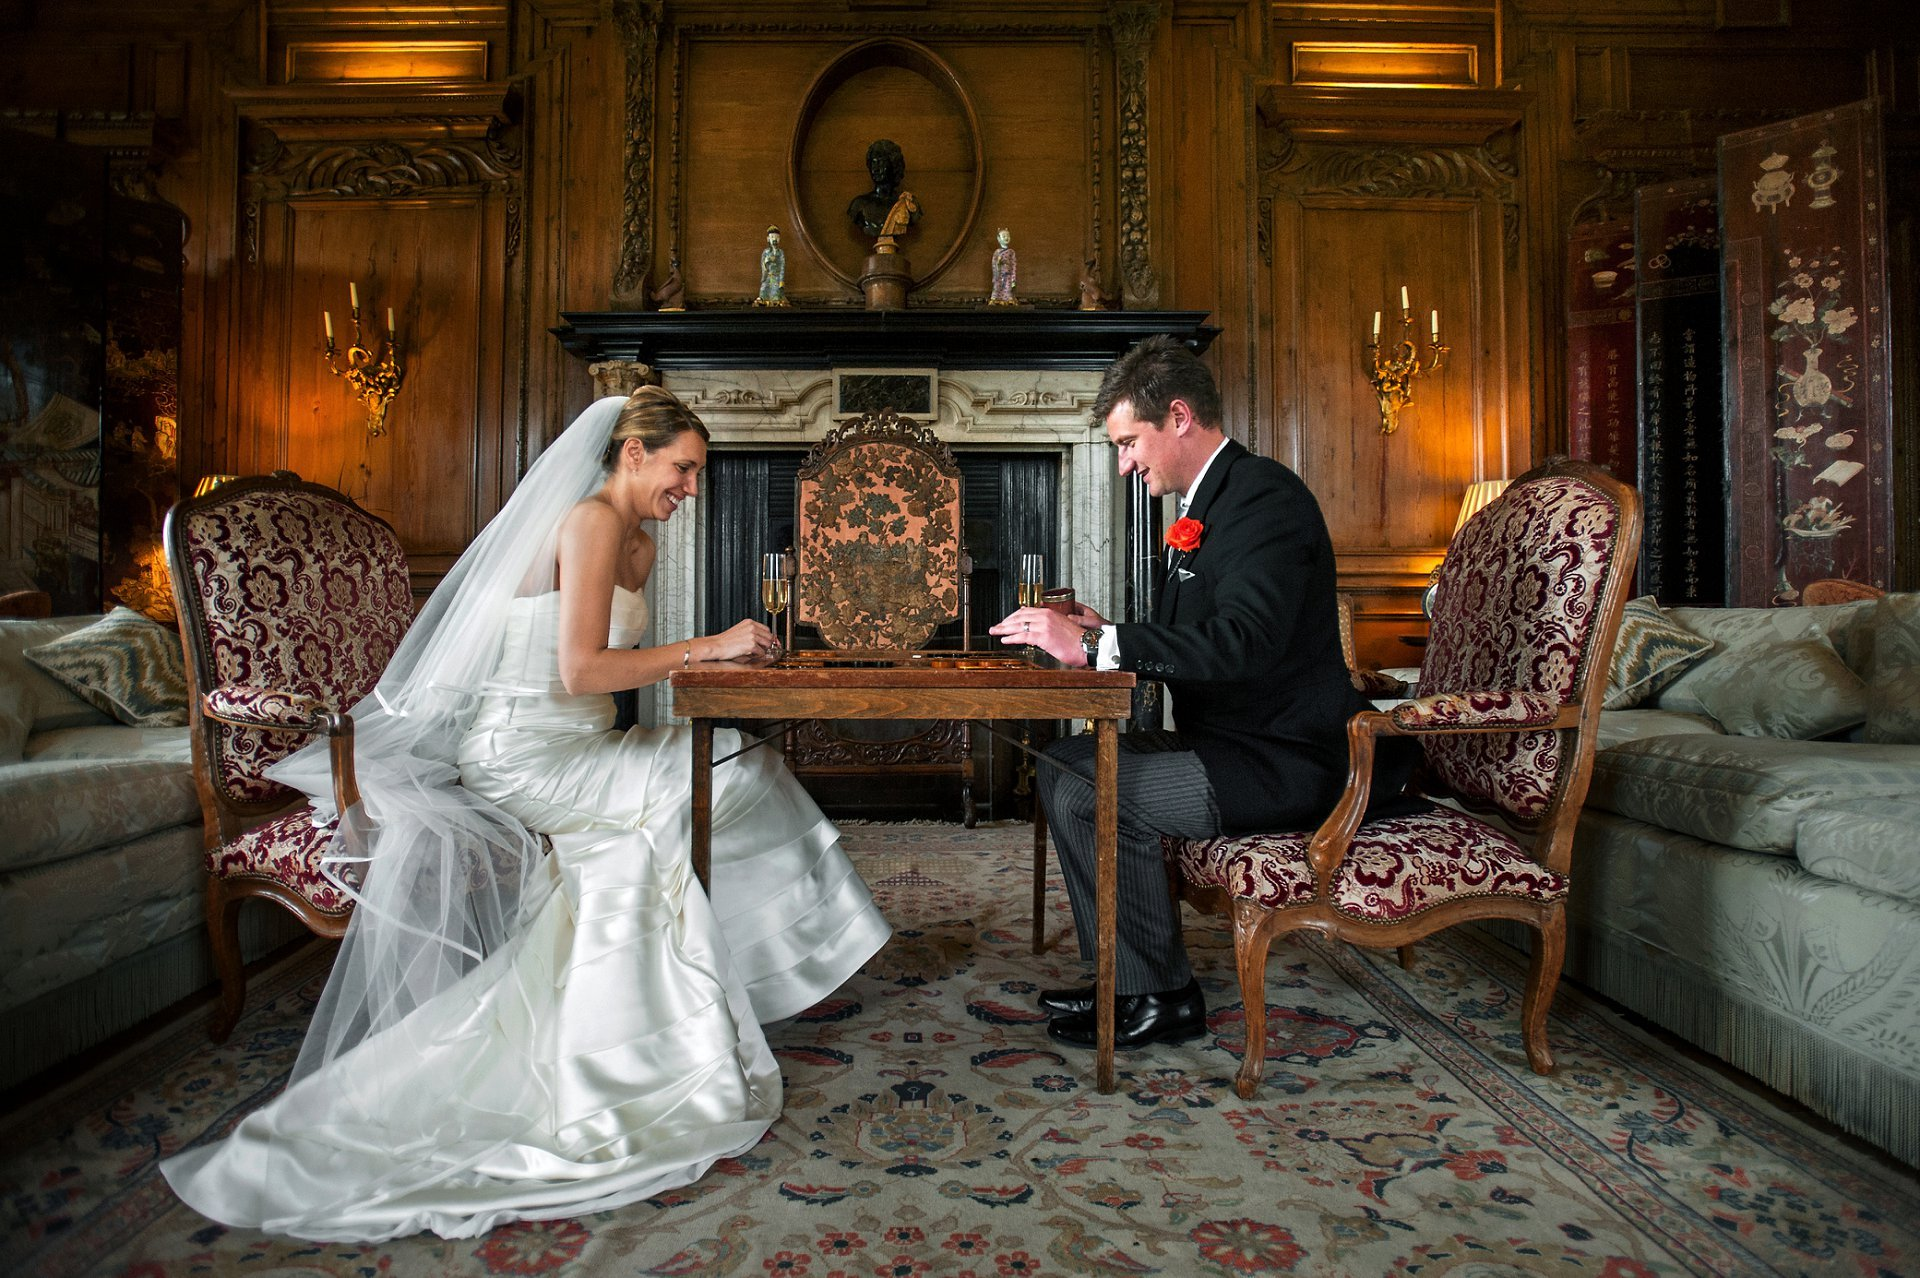 The bride and groom play backgammon in the Thorpe Hall Drawing Room at Leeds Castle on their wedding day